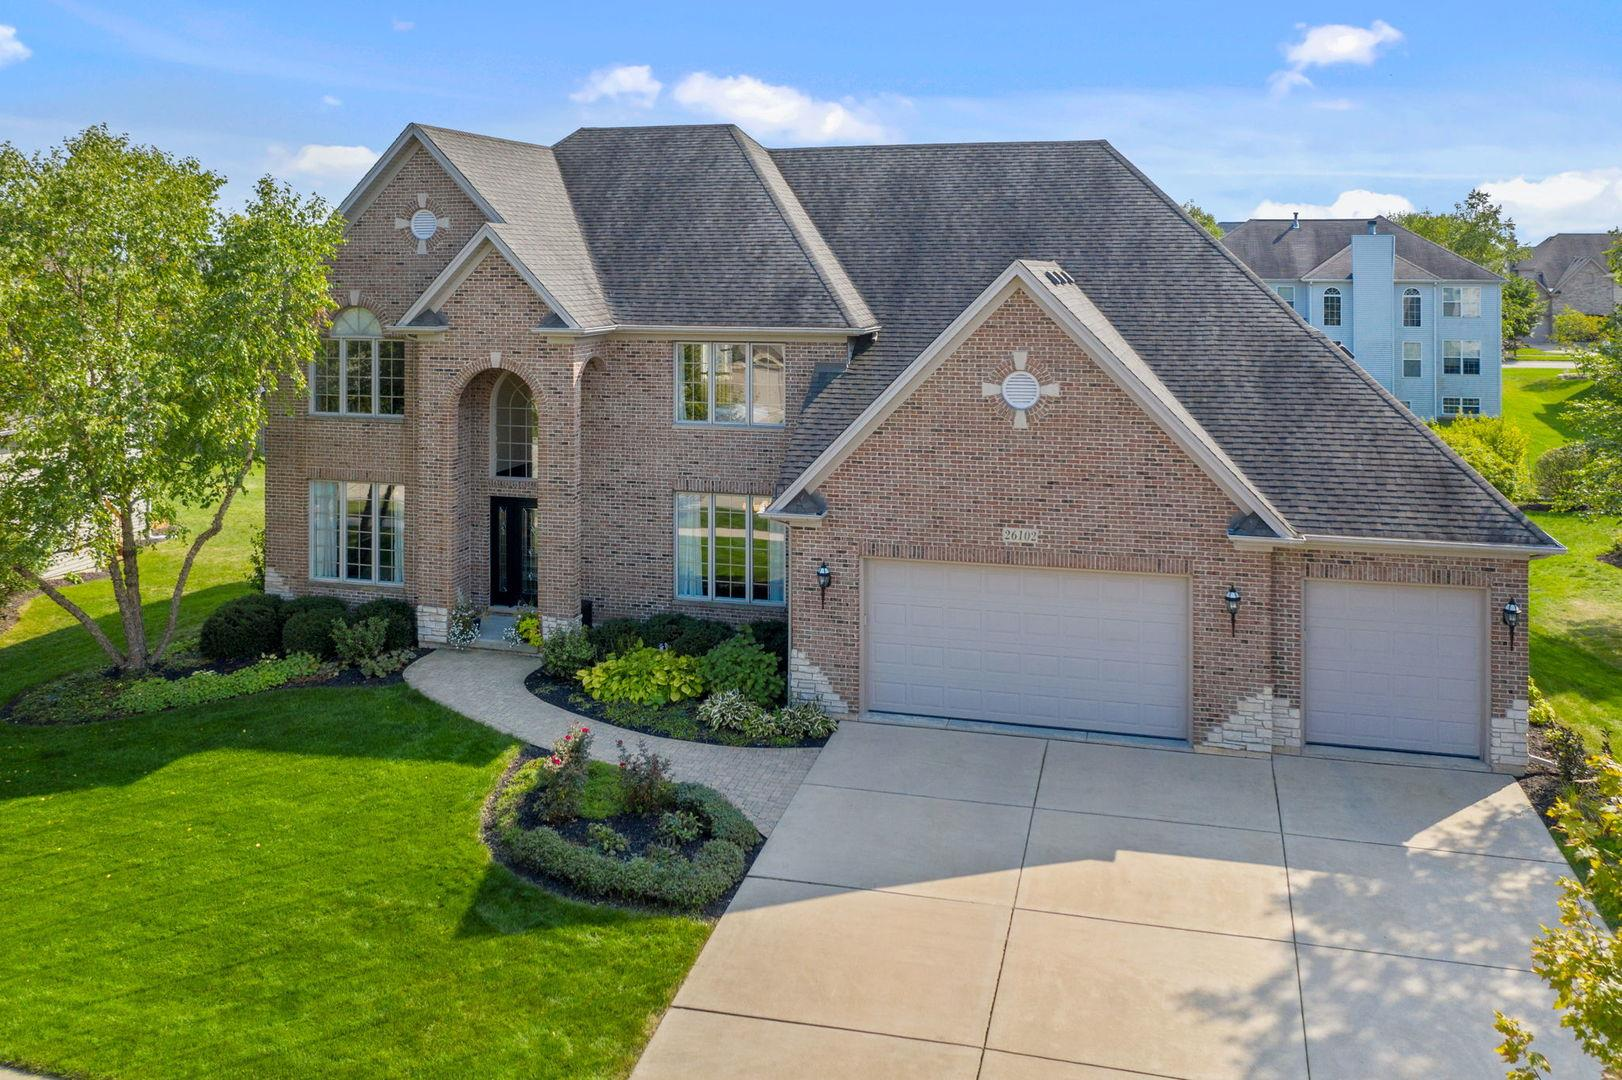 26102 Whispering Woods Circle, Plainfield, IL 60585 - #: 10887797